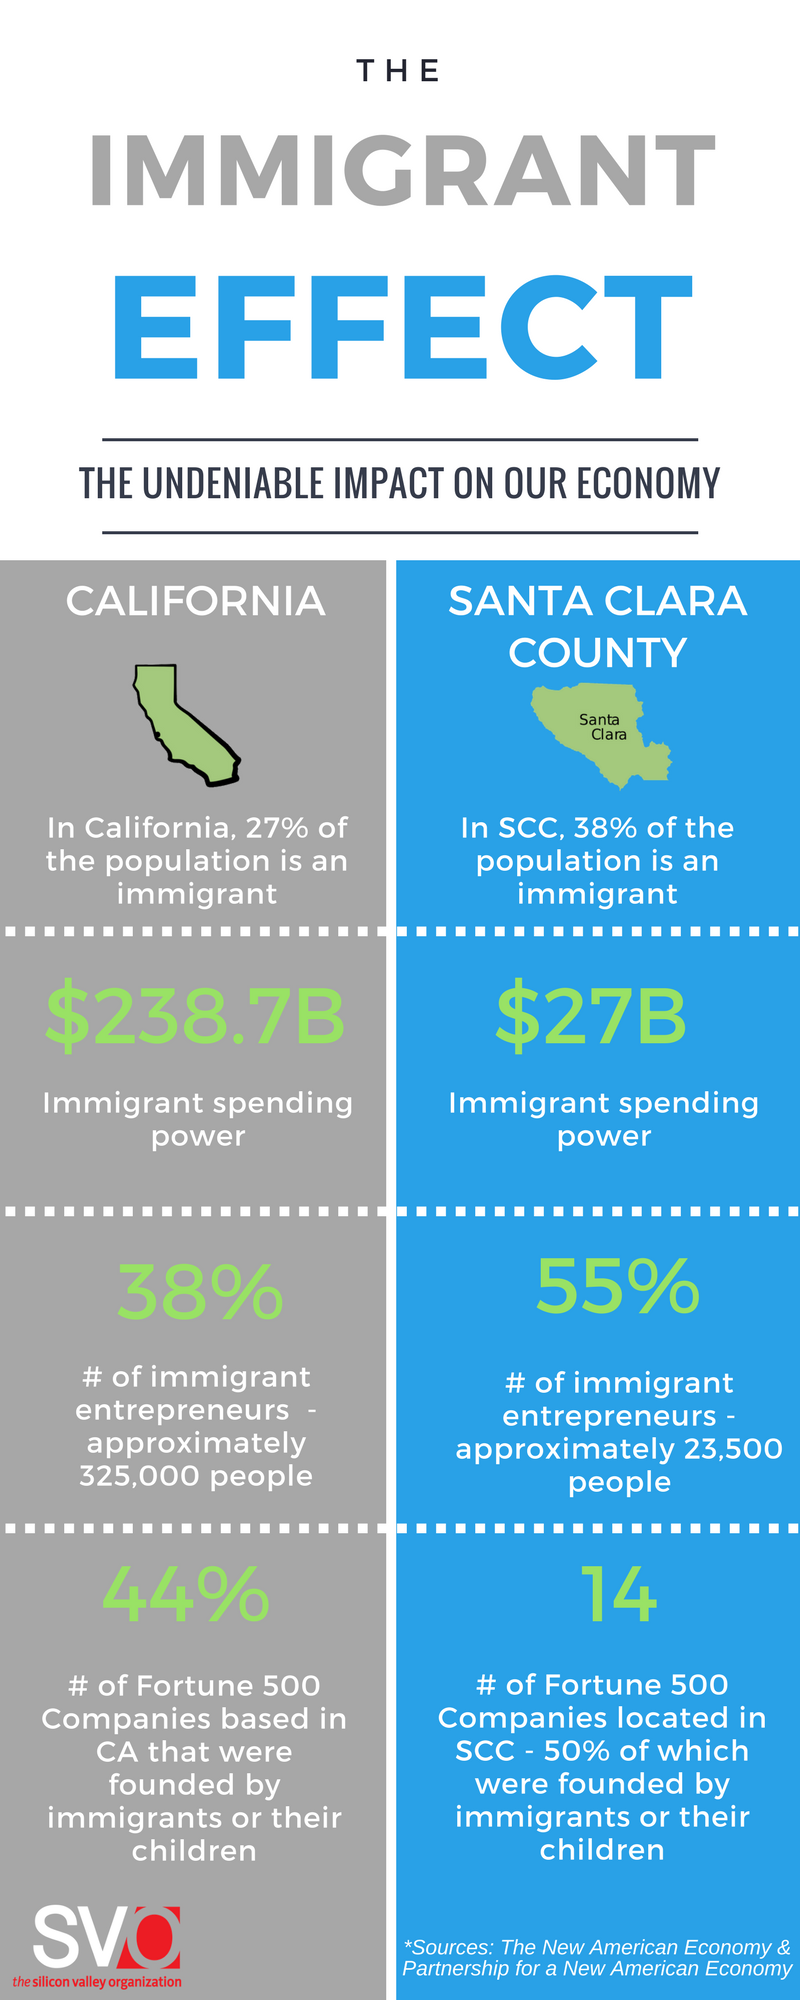 Immigrant Impact on Santa Clara County California Infographic